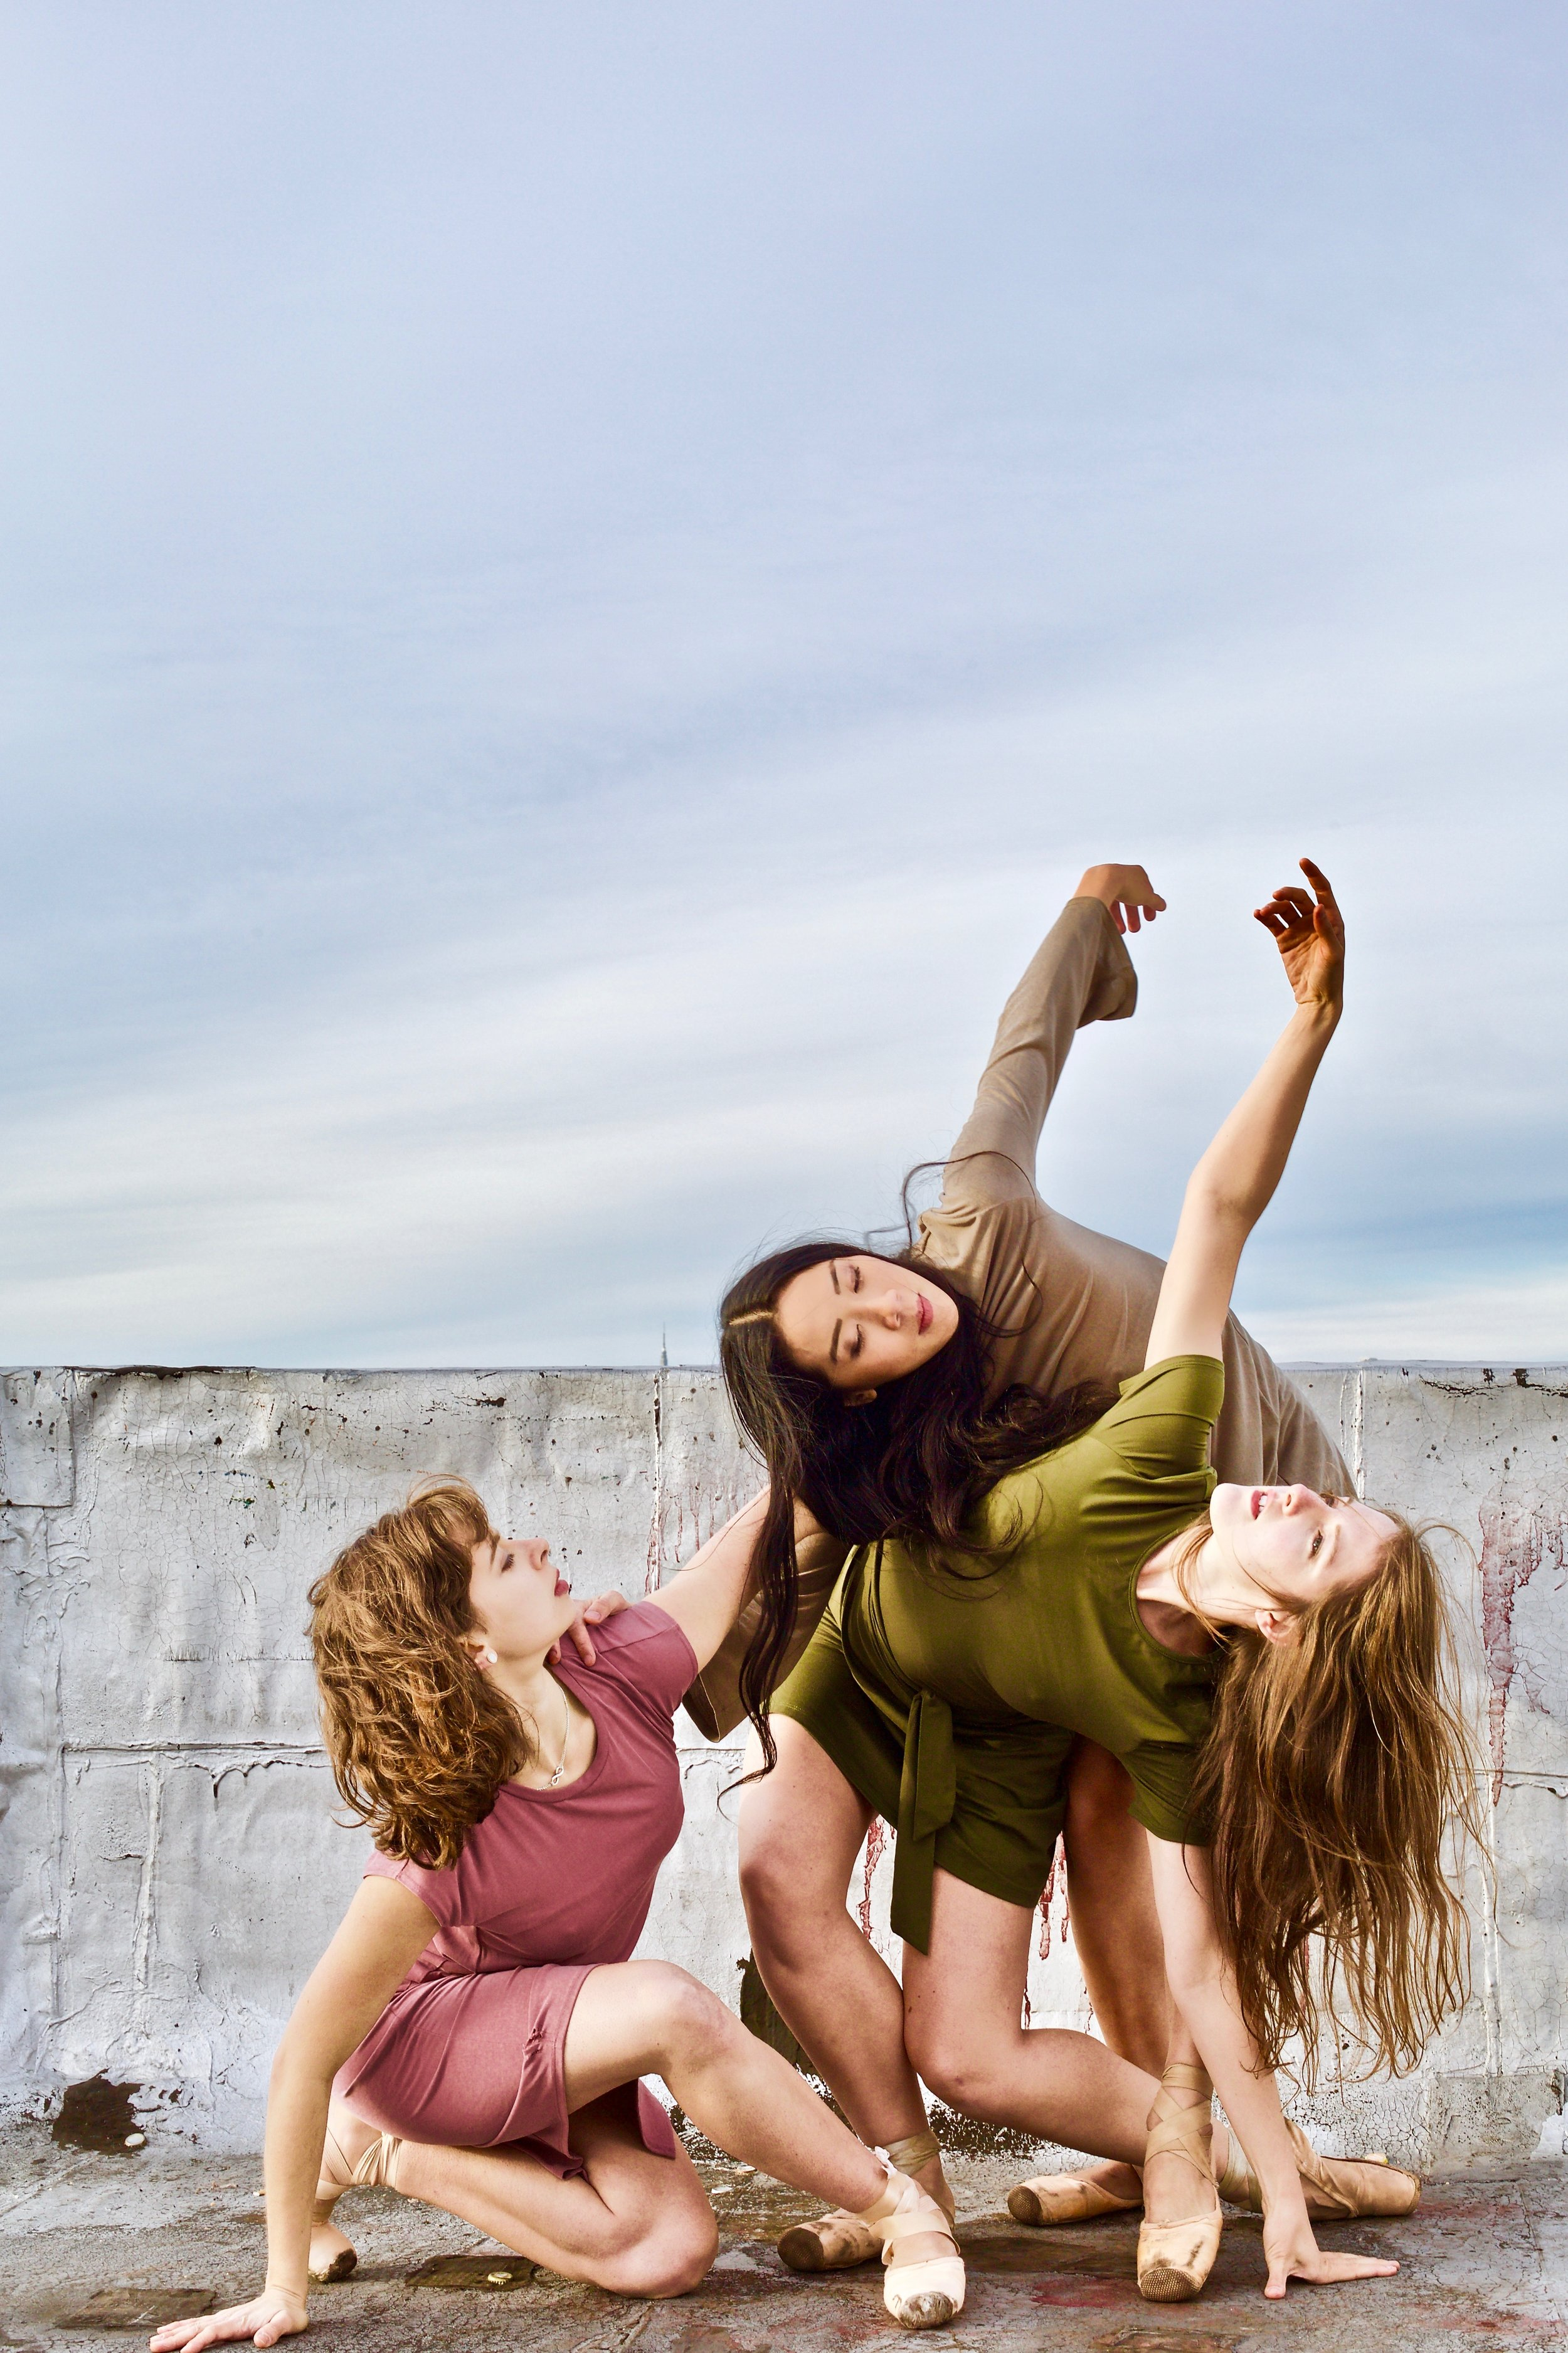 Jordan Miller, Tiffany Mangulabnan, Amy Saunder. Photo by Sergio Carrasco.